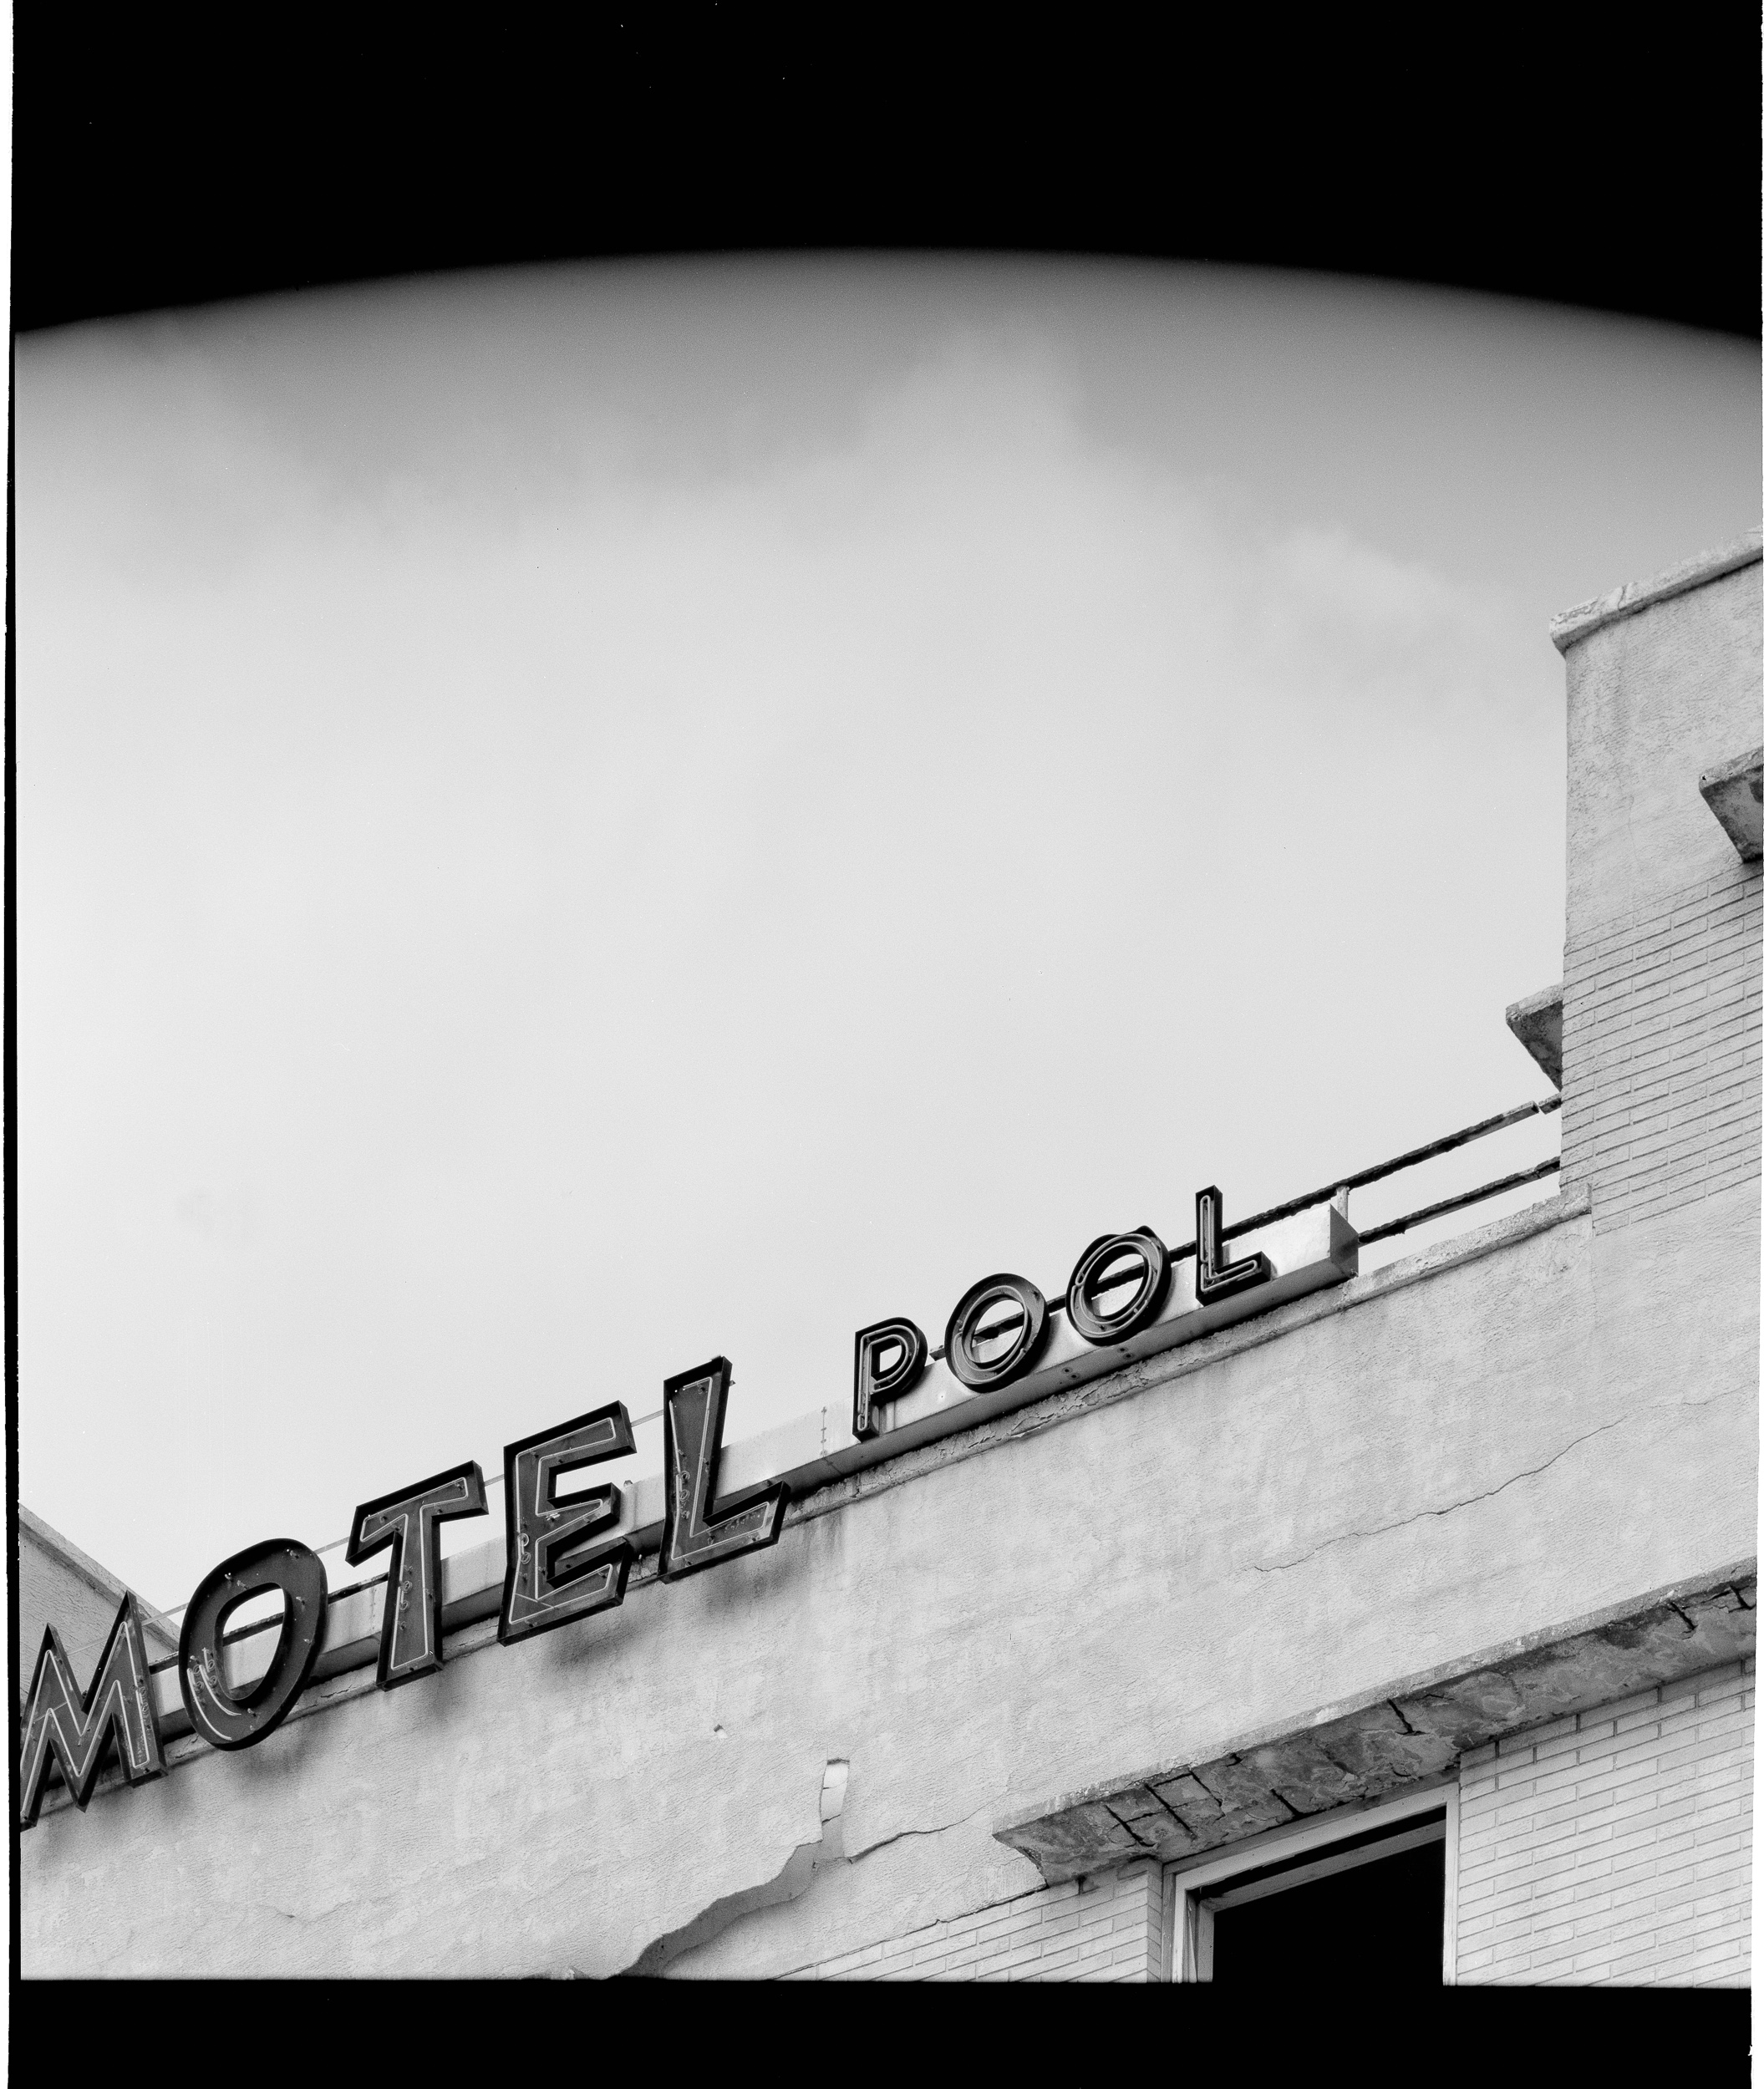 Walter Smith photographer + director based in NYC and LA. Asbury Park project.